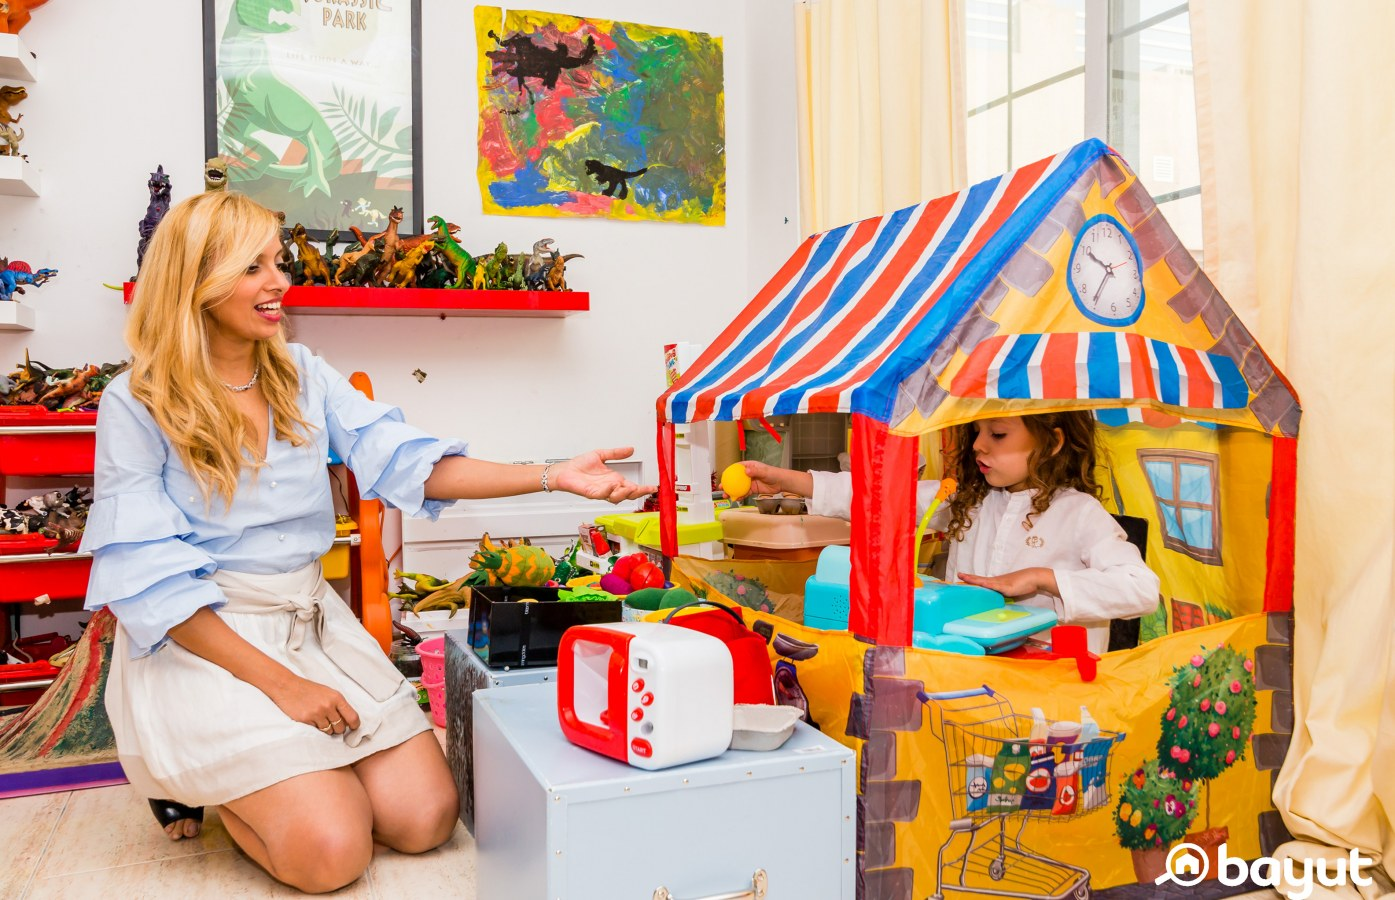 Children's play areas in houses in dubai